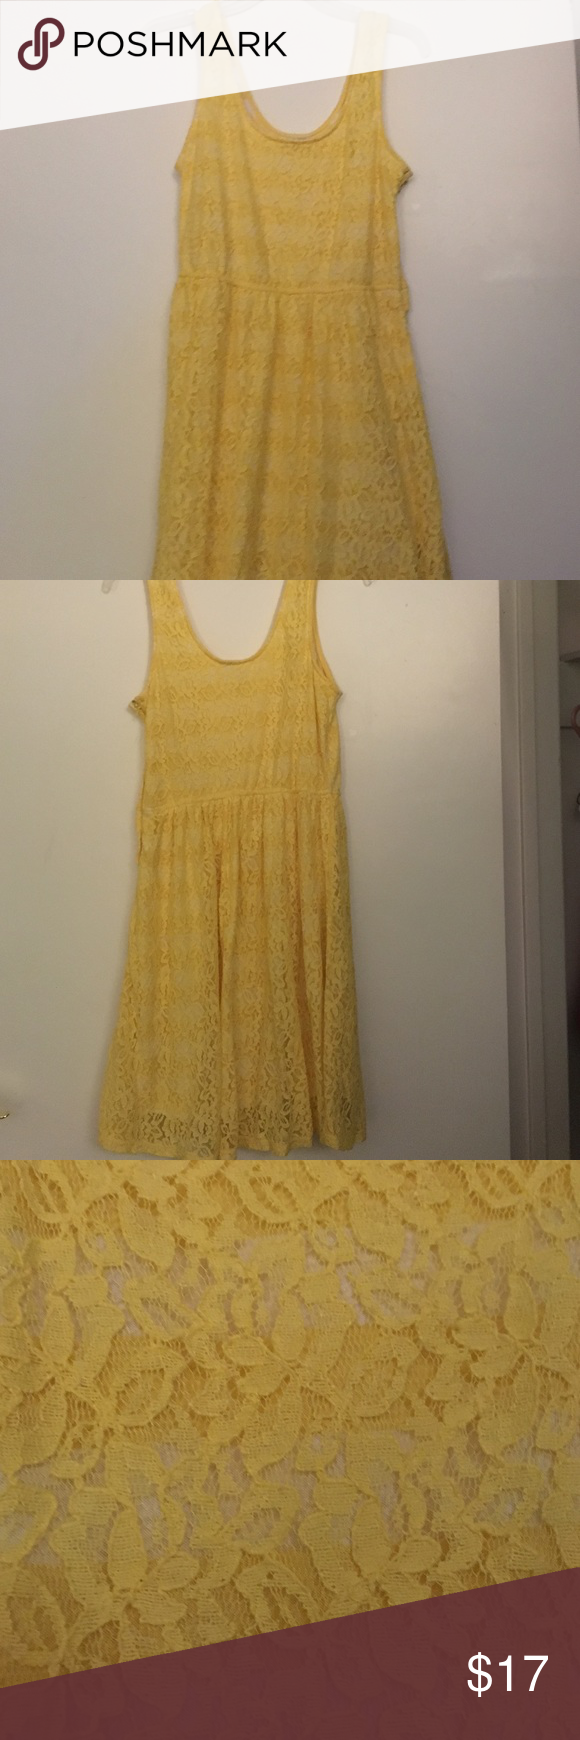 Yellow Lace Summer Dress Lace dress with striped underlay and thick straps Mossimo Supply Co Dresses